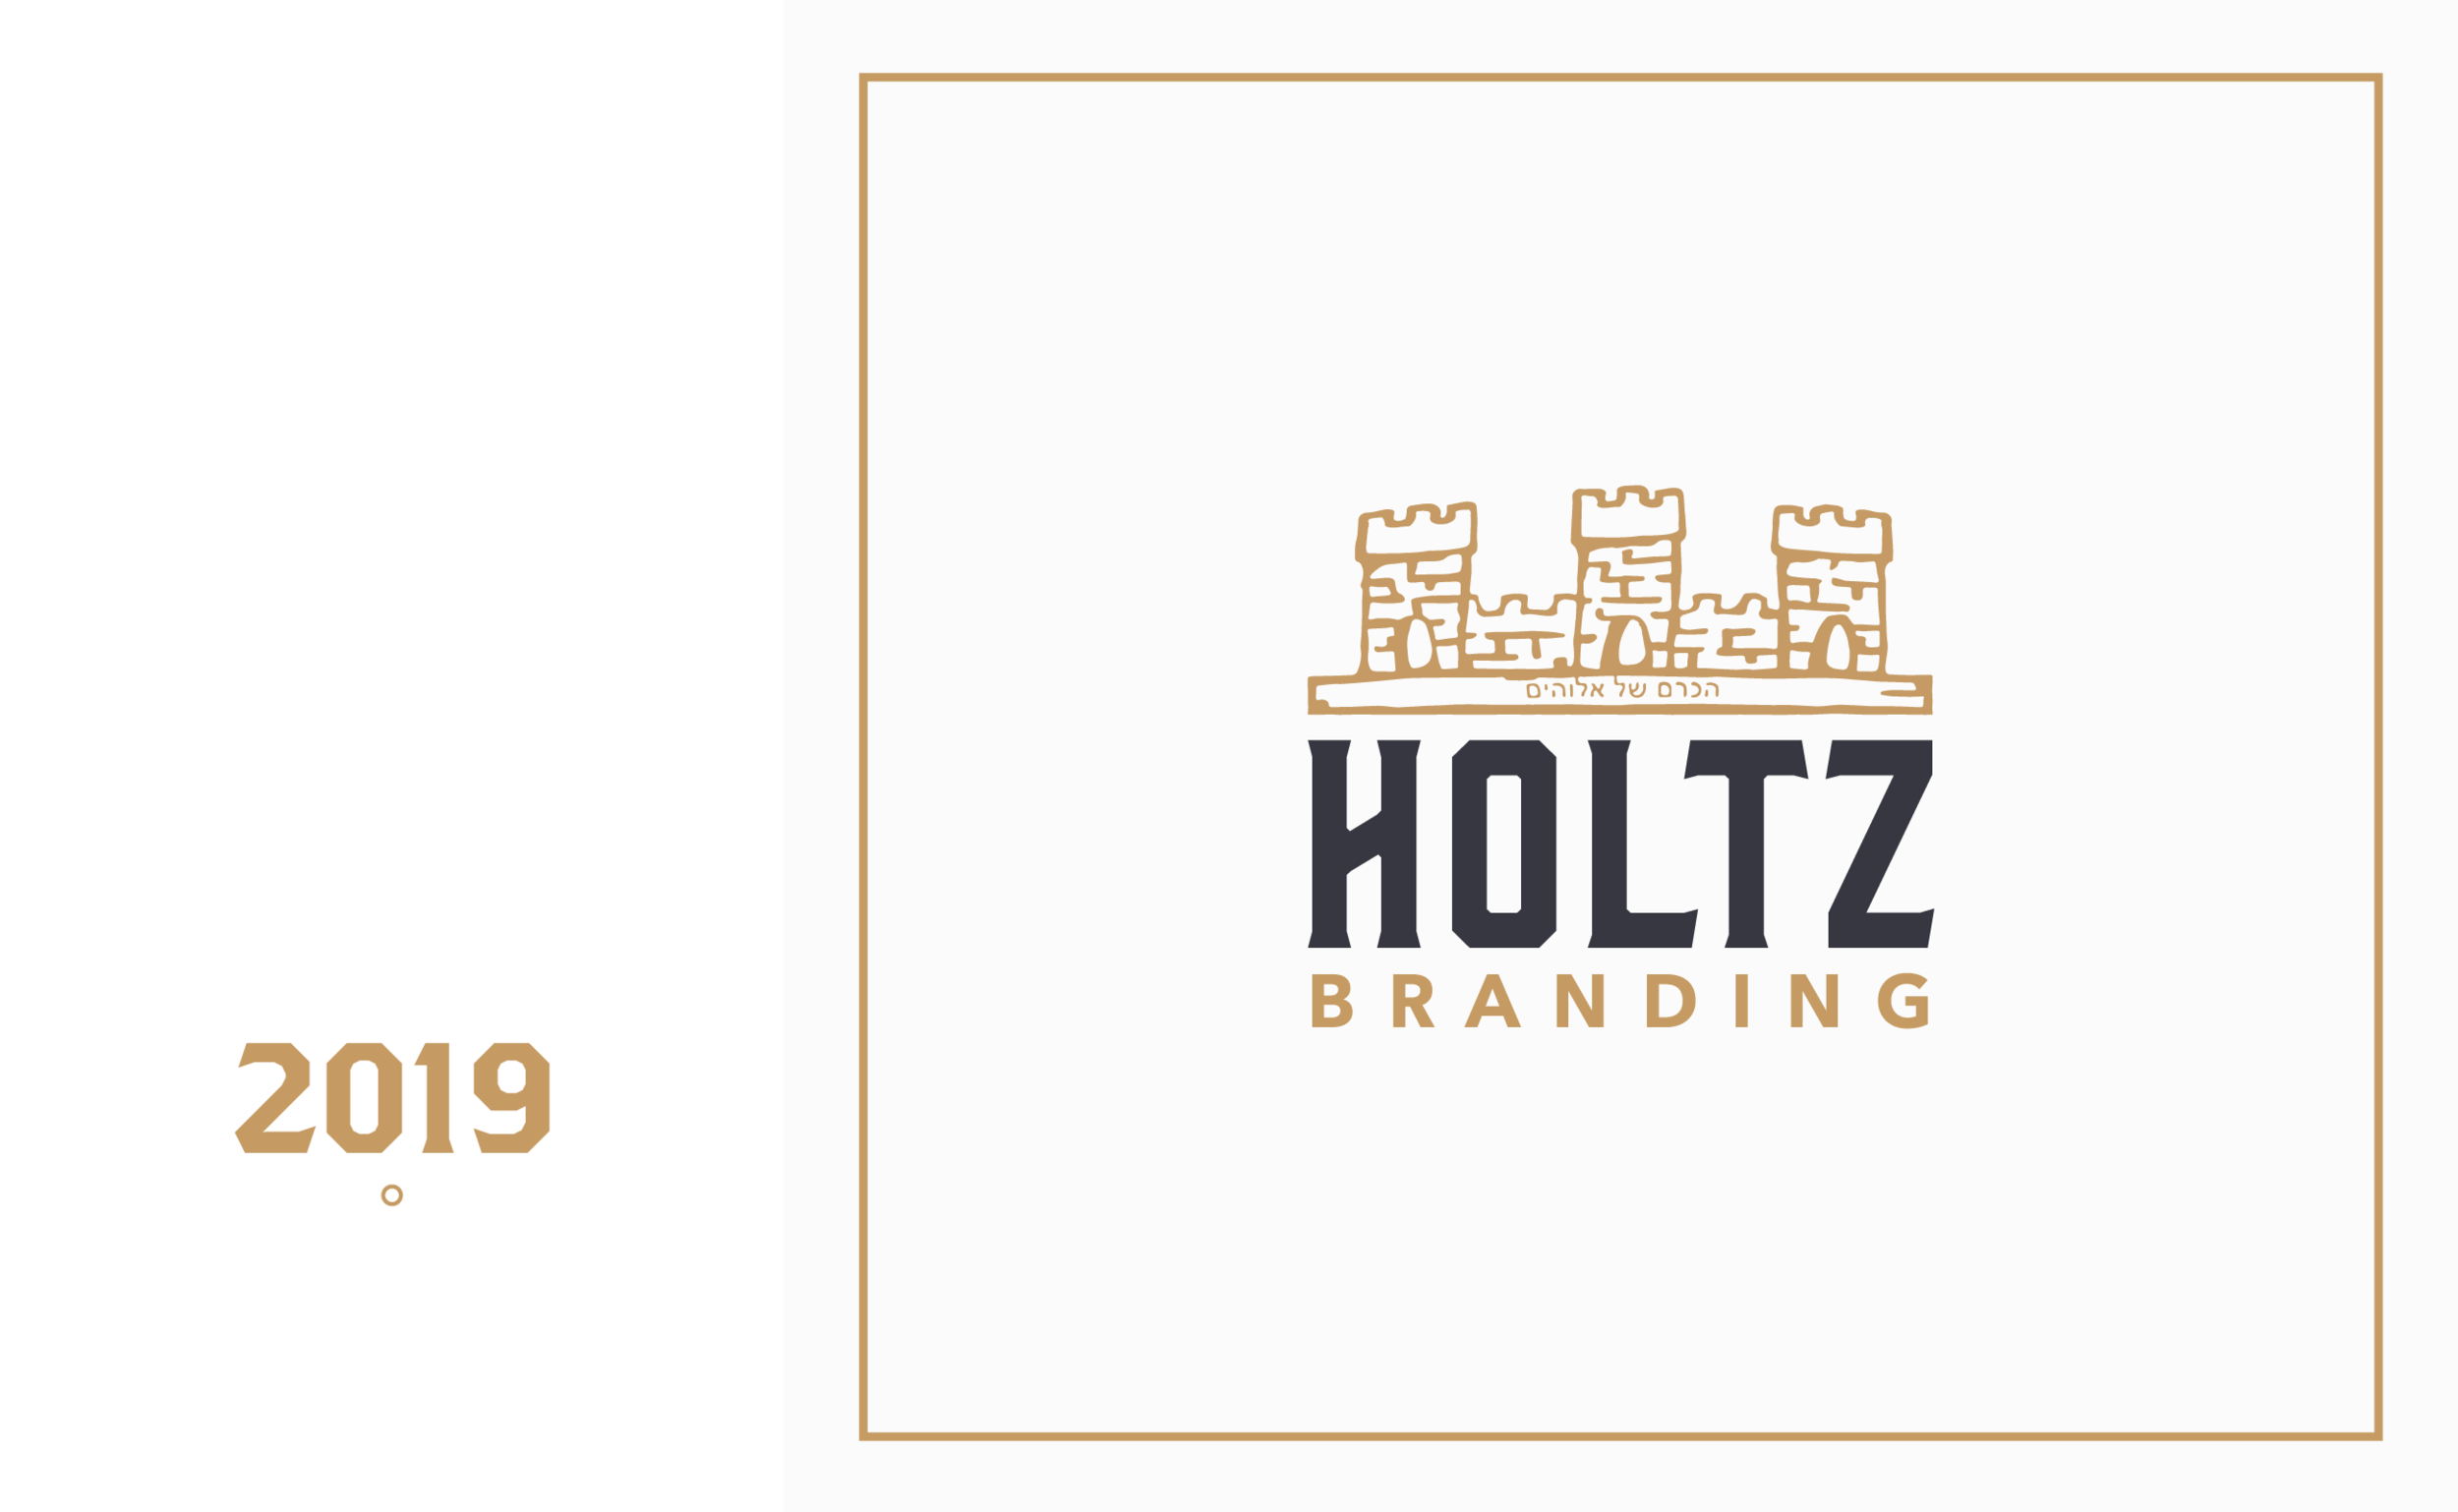 HoltzBranding-AboutUs-HoltzBranding-Transparent-01.png